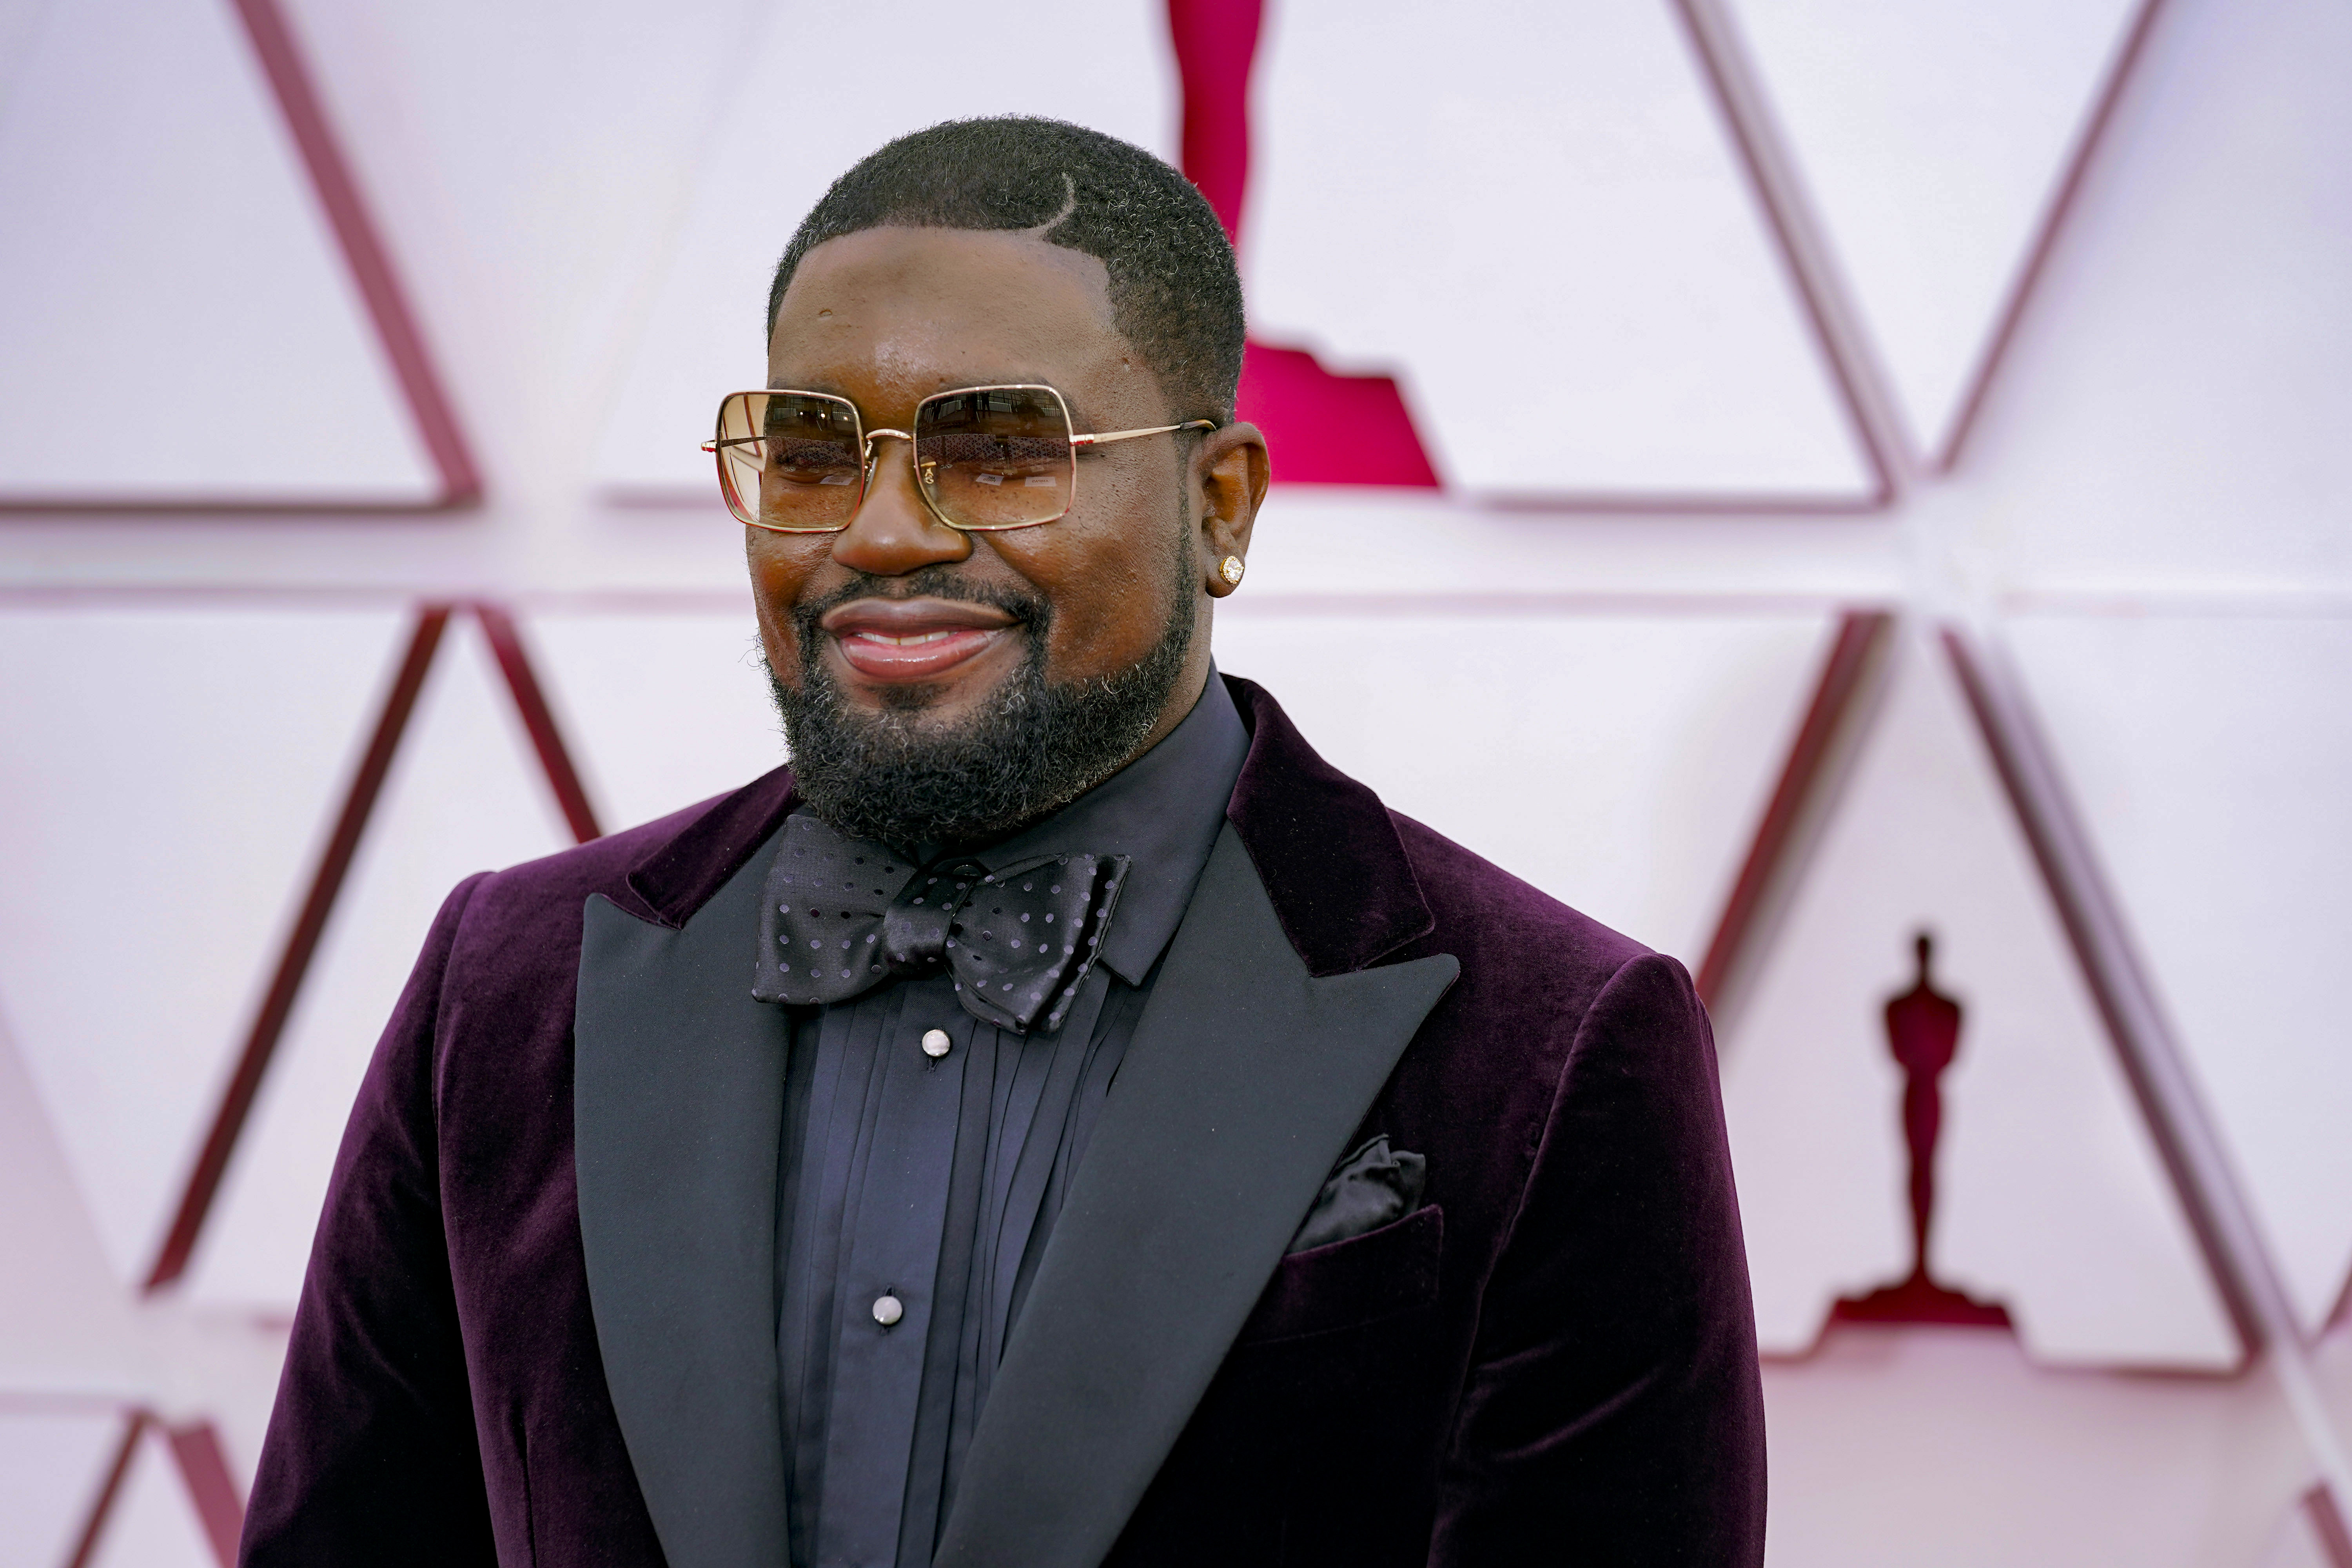 Lil Rel Howery at the 93rd Annual Academy Awards at Union Station on April 25, 2021